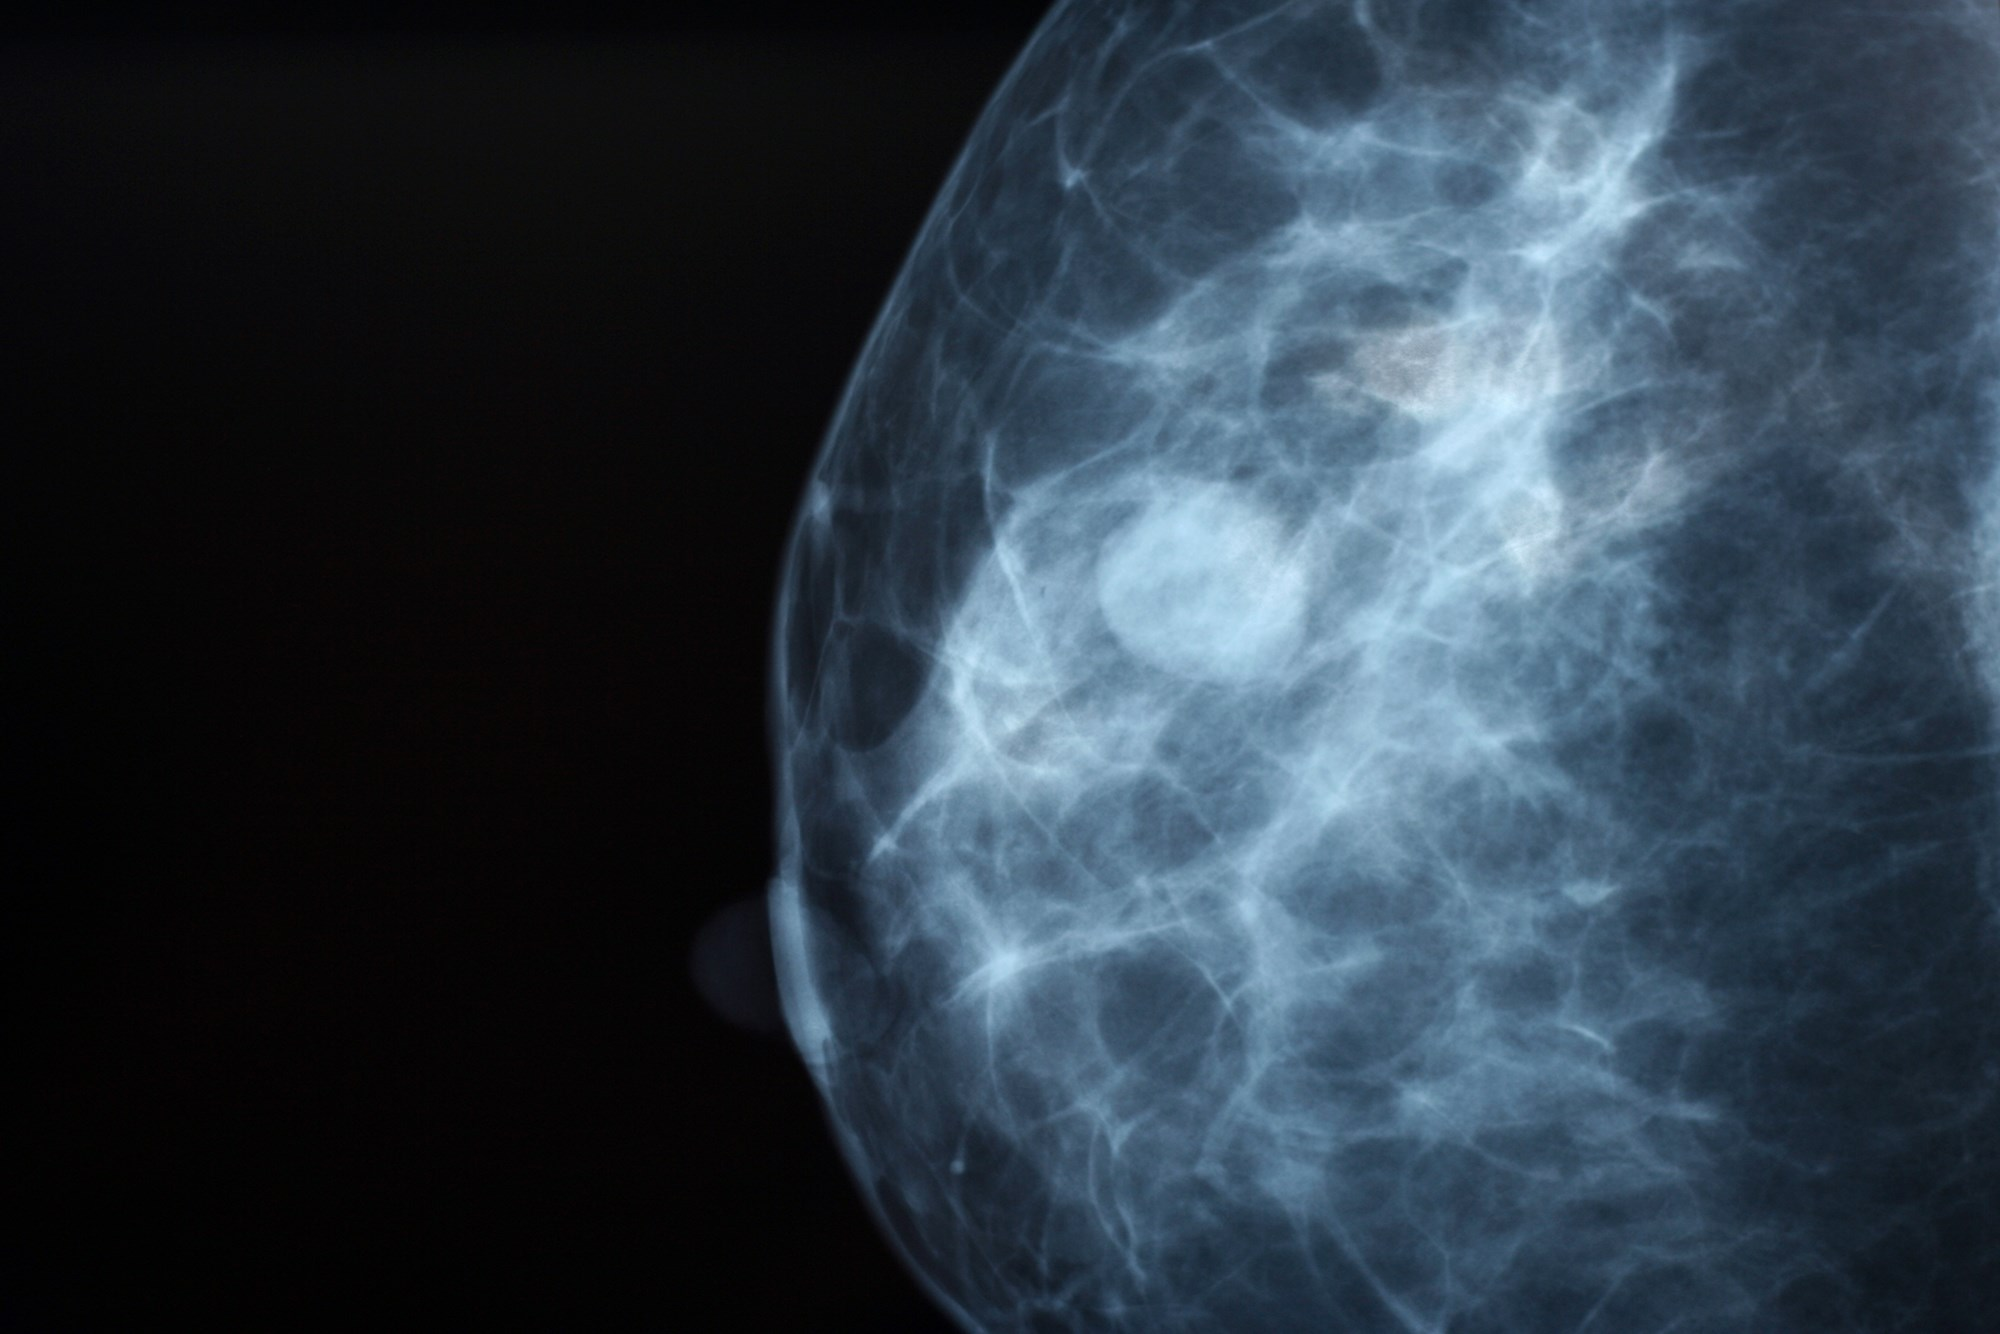 Should Increased Breast Density Dictate More Breast Cancer Screenings?